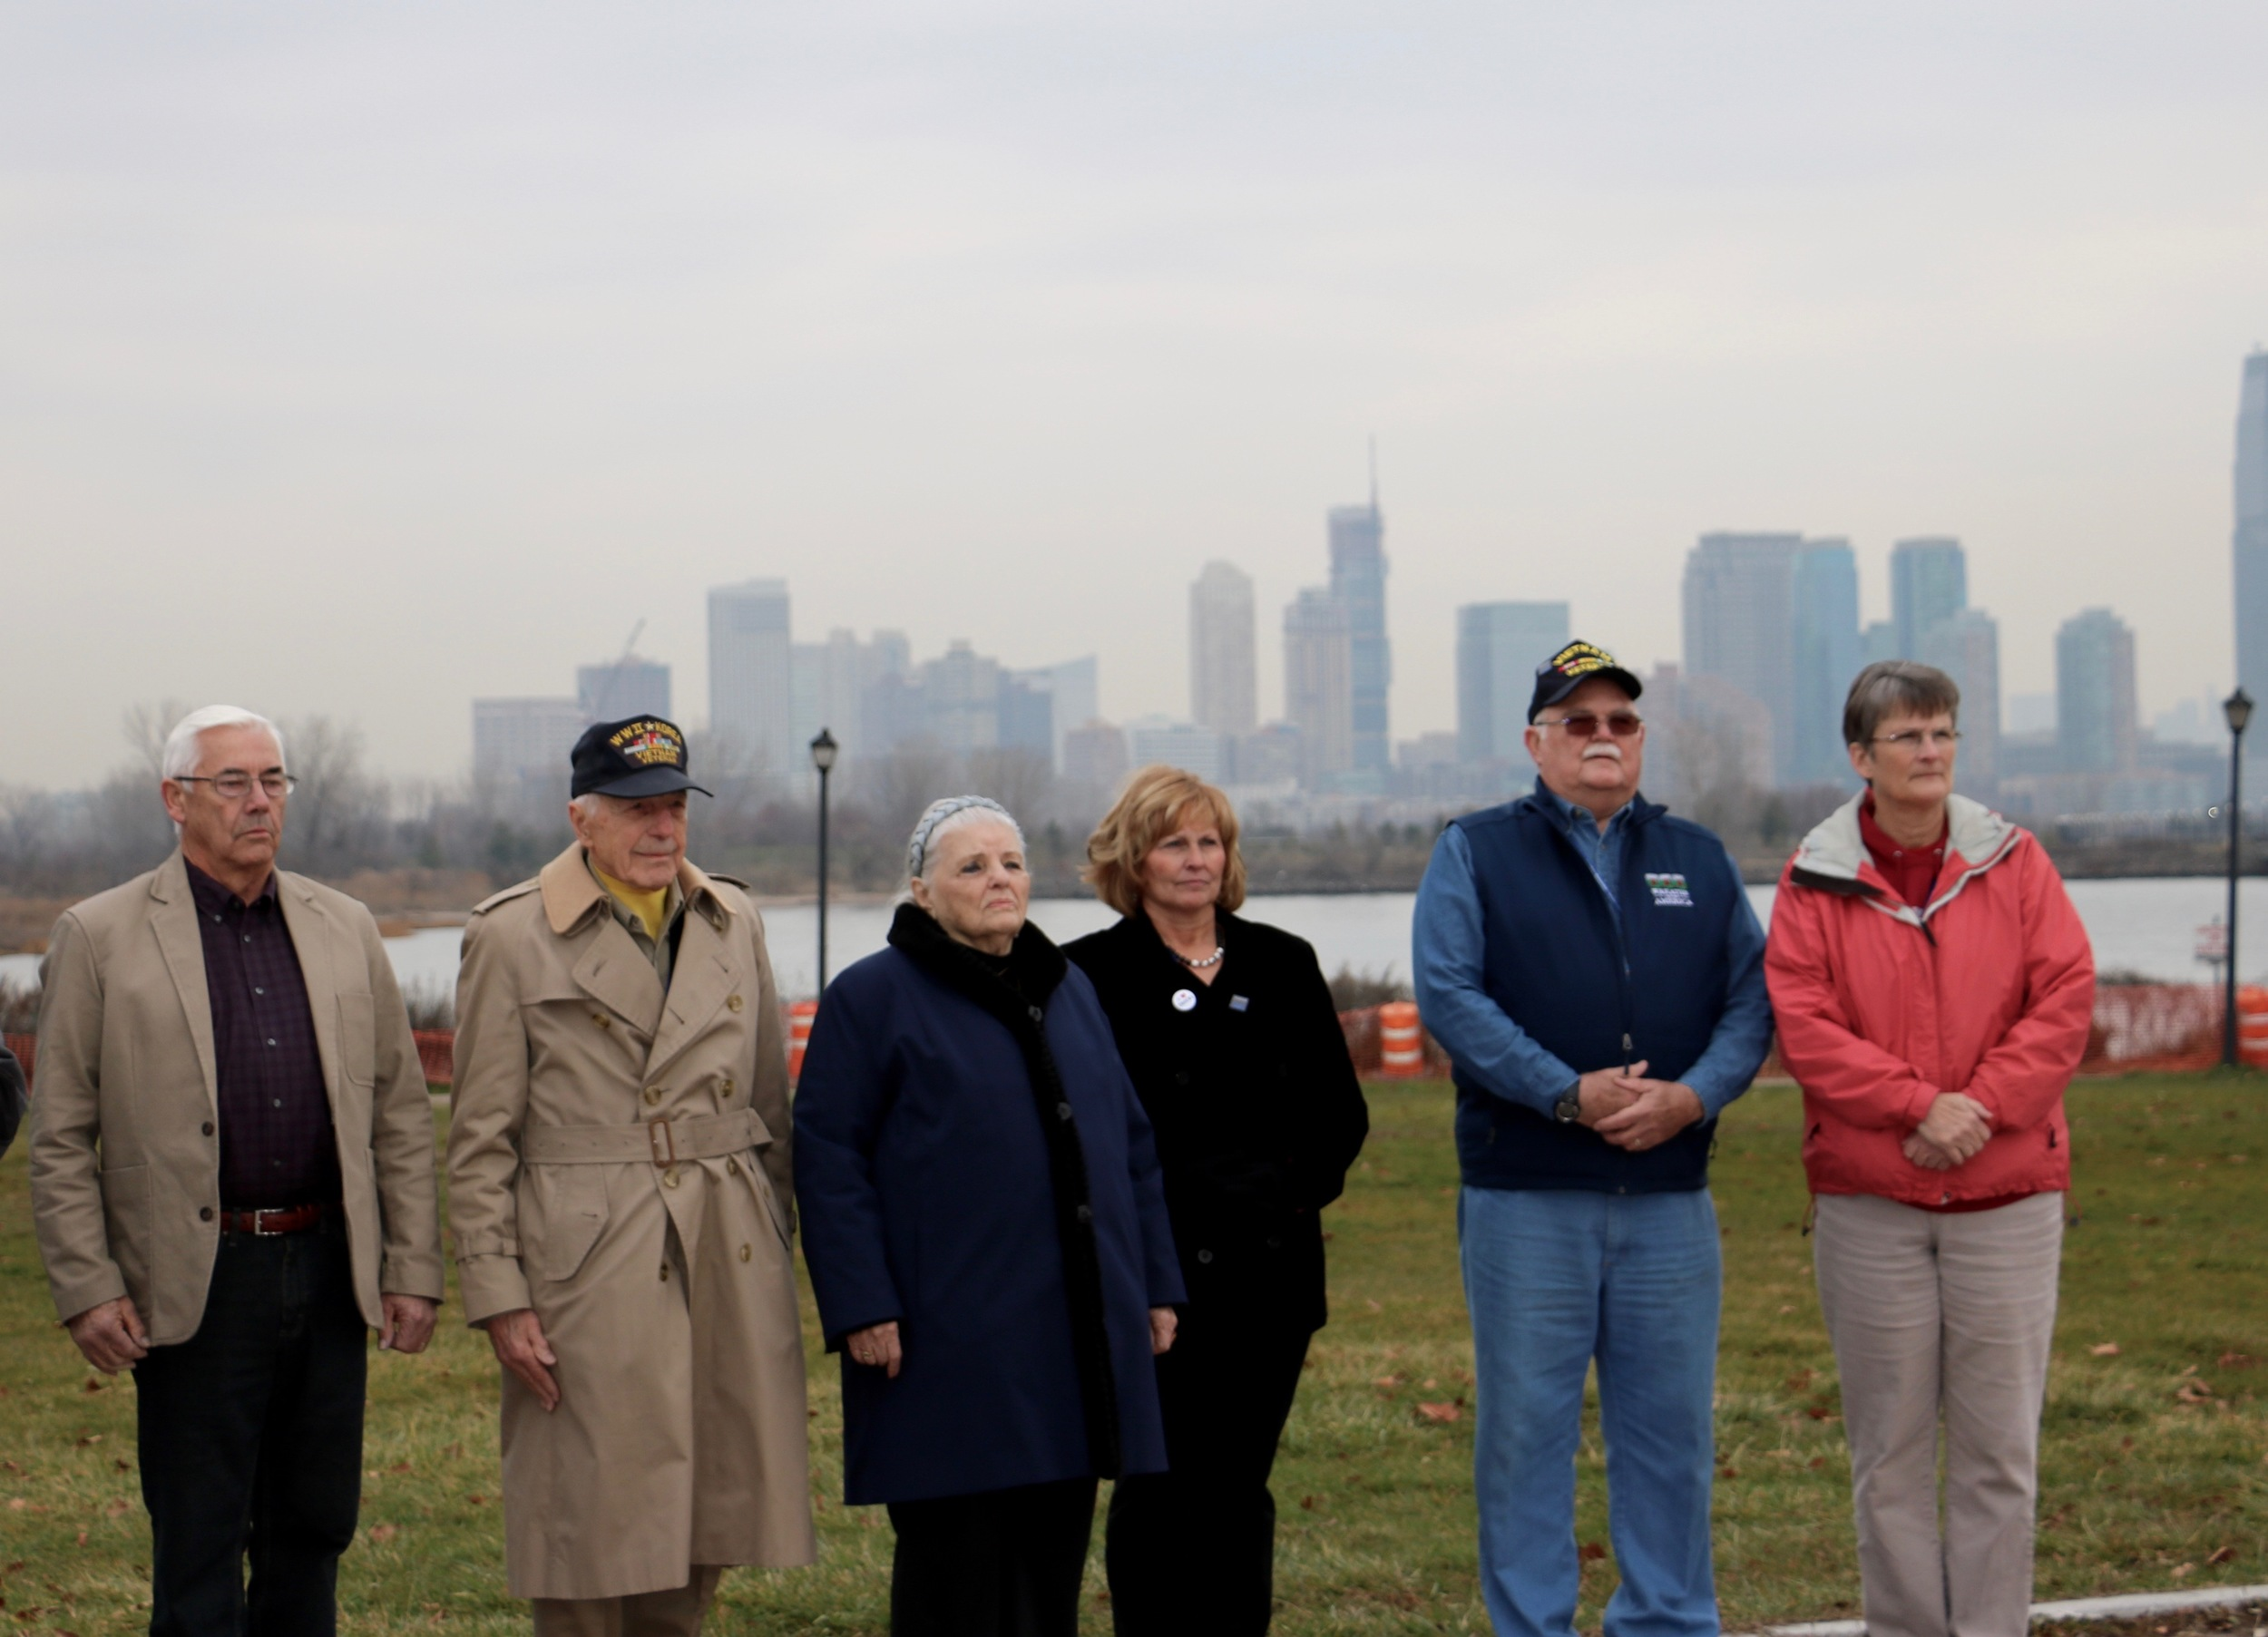 (From left to right: 2015 Escort to Arlington National Cemetery Grand Marshals and military veterans Gordon Kelley and Carmine Pecorelli, Holocaust survivor Luna Kaufman, Maine's First Lady Ann LePage, Wreaths Across America Chairman of the Board Wayne Hanson, and wife Ann Hanson.)